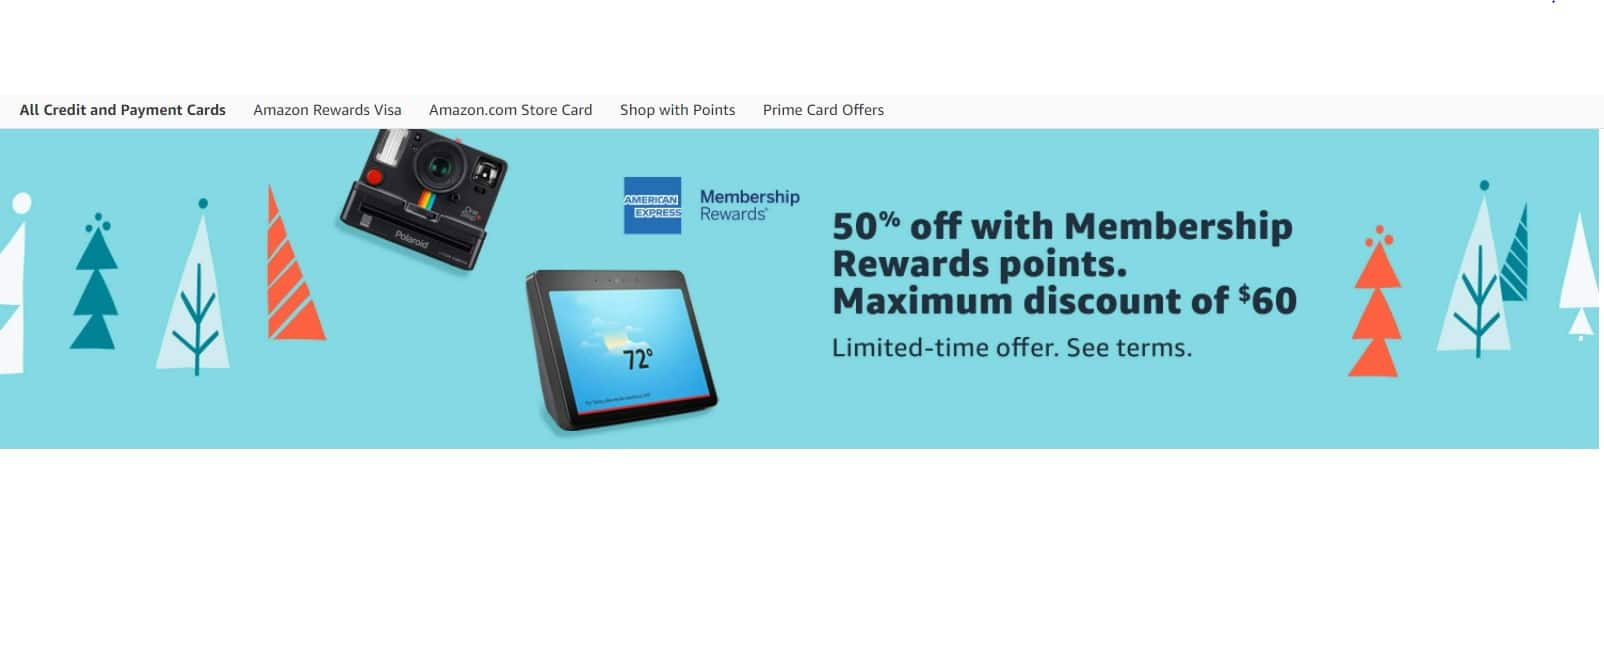 (YMMV) Amex Membership Reward 50% off Purchase on Items Sold by Amazon with Membership Rewards Points - Max Discount of $60